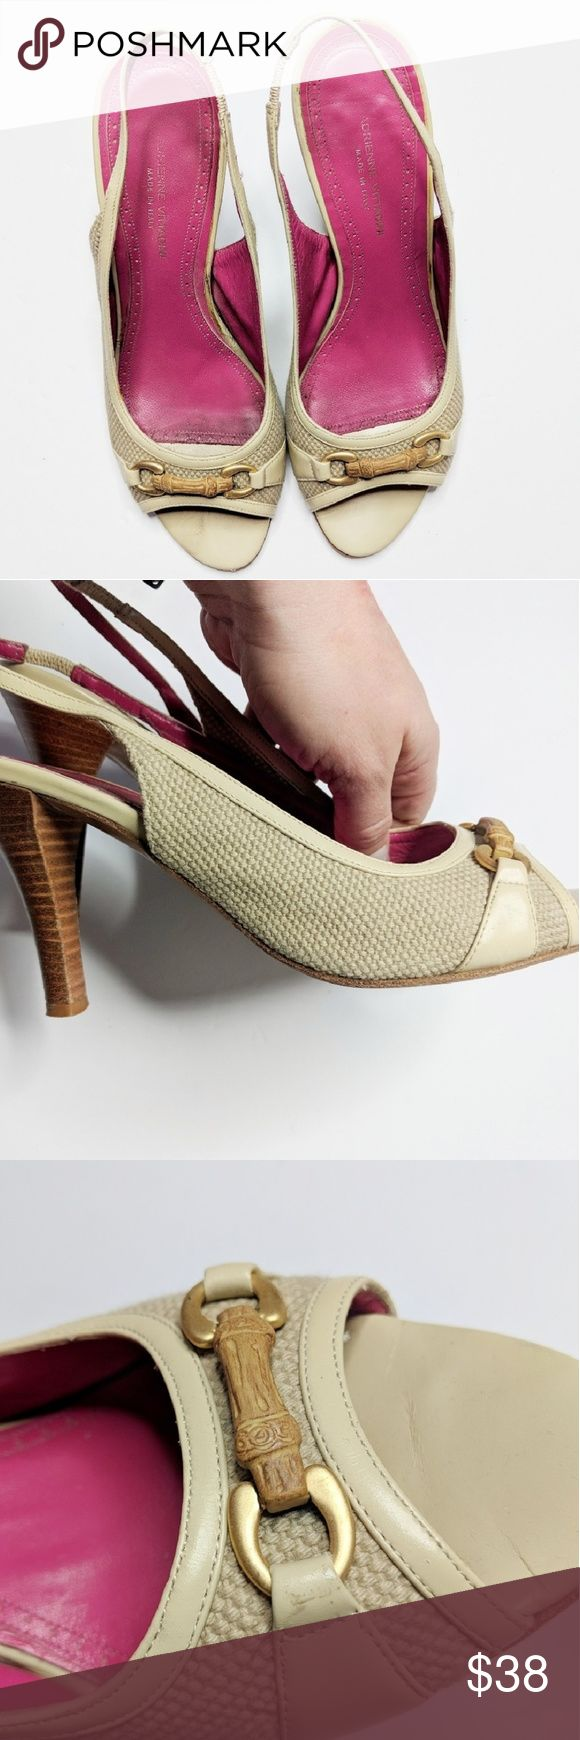 ADRIENNE VITTADINI canvas leather slingback heels Adrienne Vittadini Italian leather slingback heels, peep toe with engraved bone detail on vamp. Pink leather interior, stacked wooden heel, leather sole. Adrienne Vittadini Shoes Heels